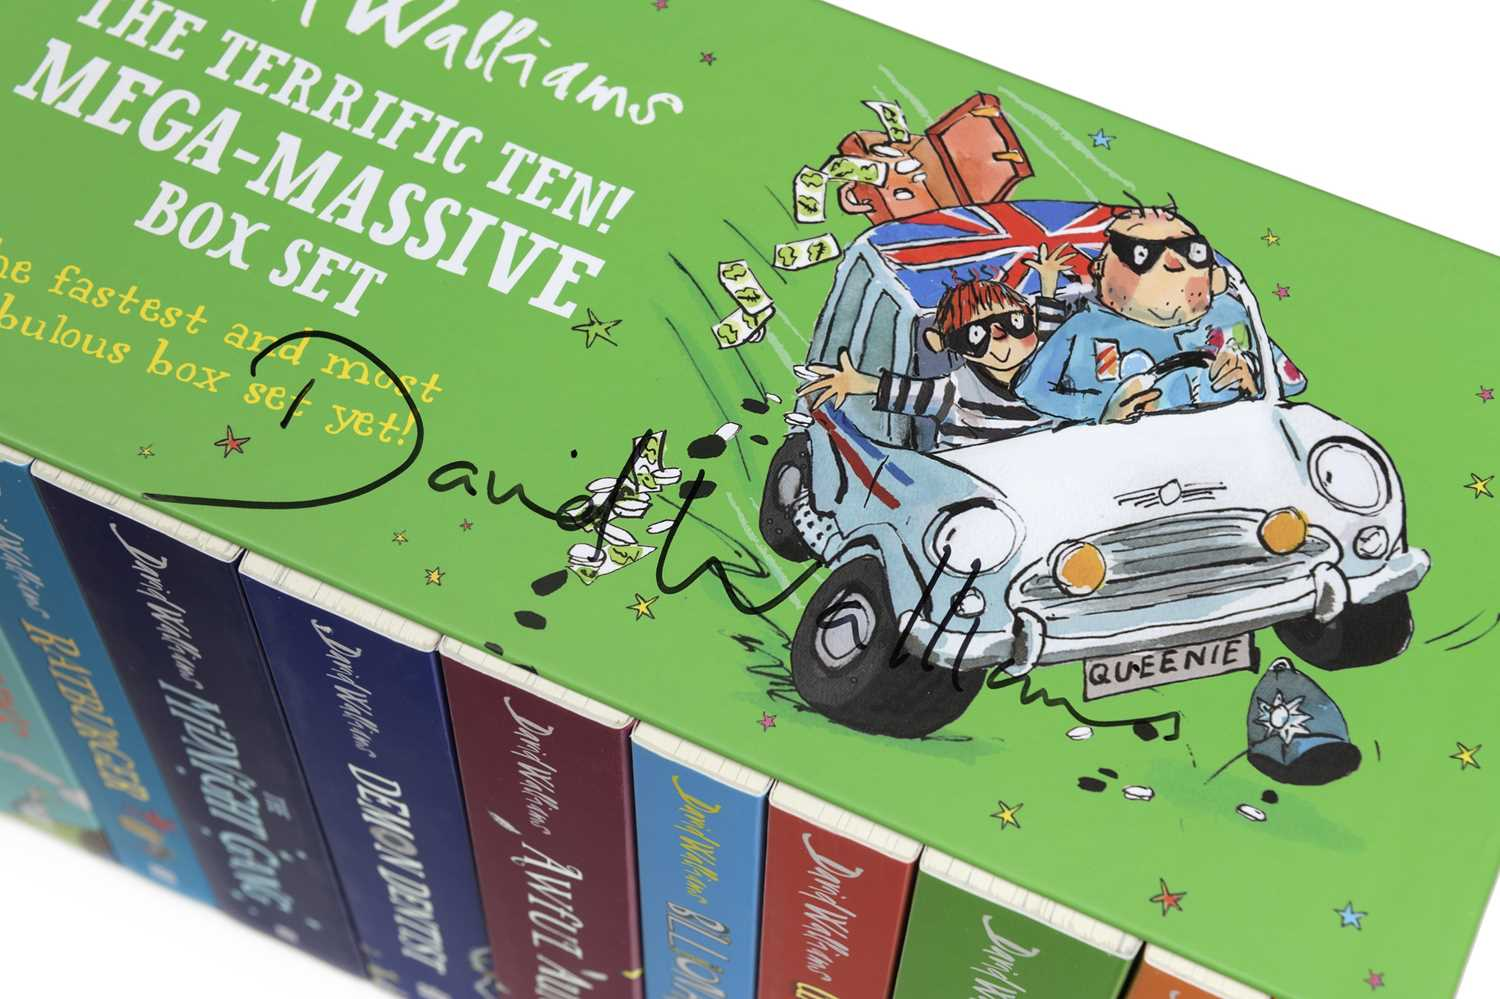 Signed David Walliams OBE Book Collection Each book in this collection is signed by the critically - Image 2 of 2